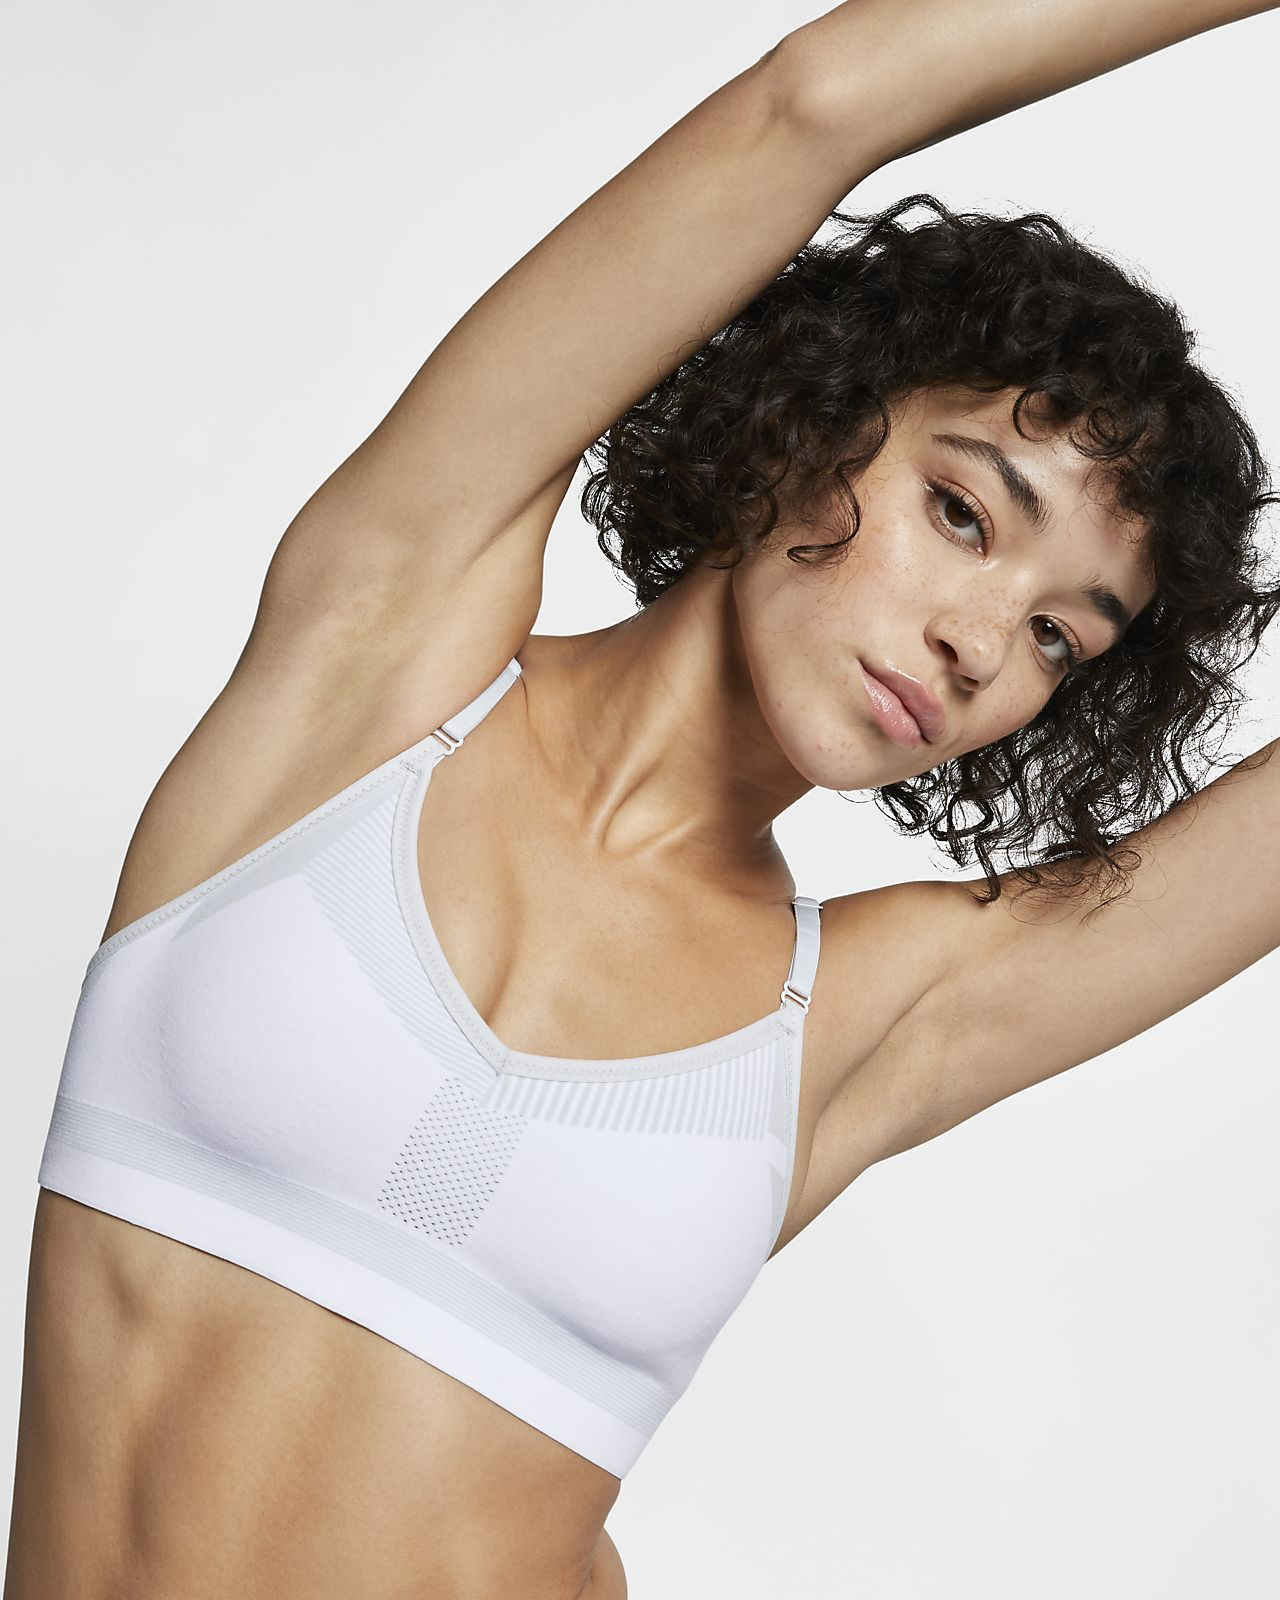 huge discount authentic well known Nike Flyknit Indy Tech Pack Women's Medium-Support Sports Bra